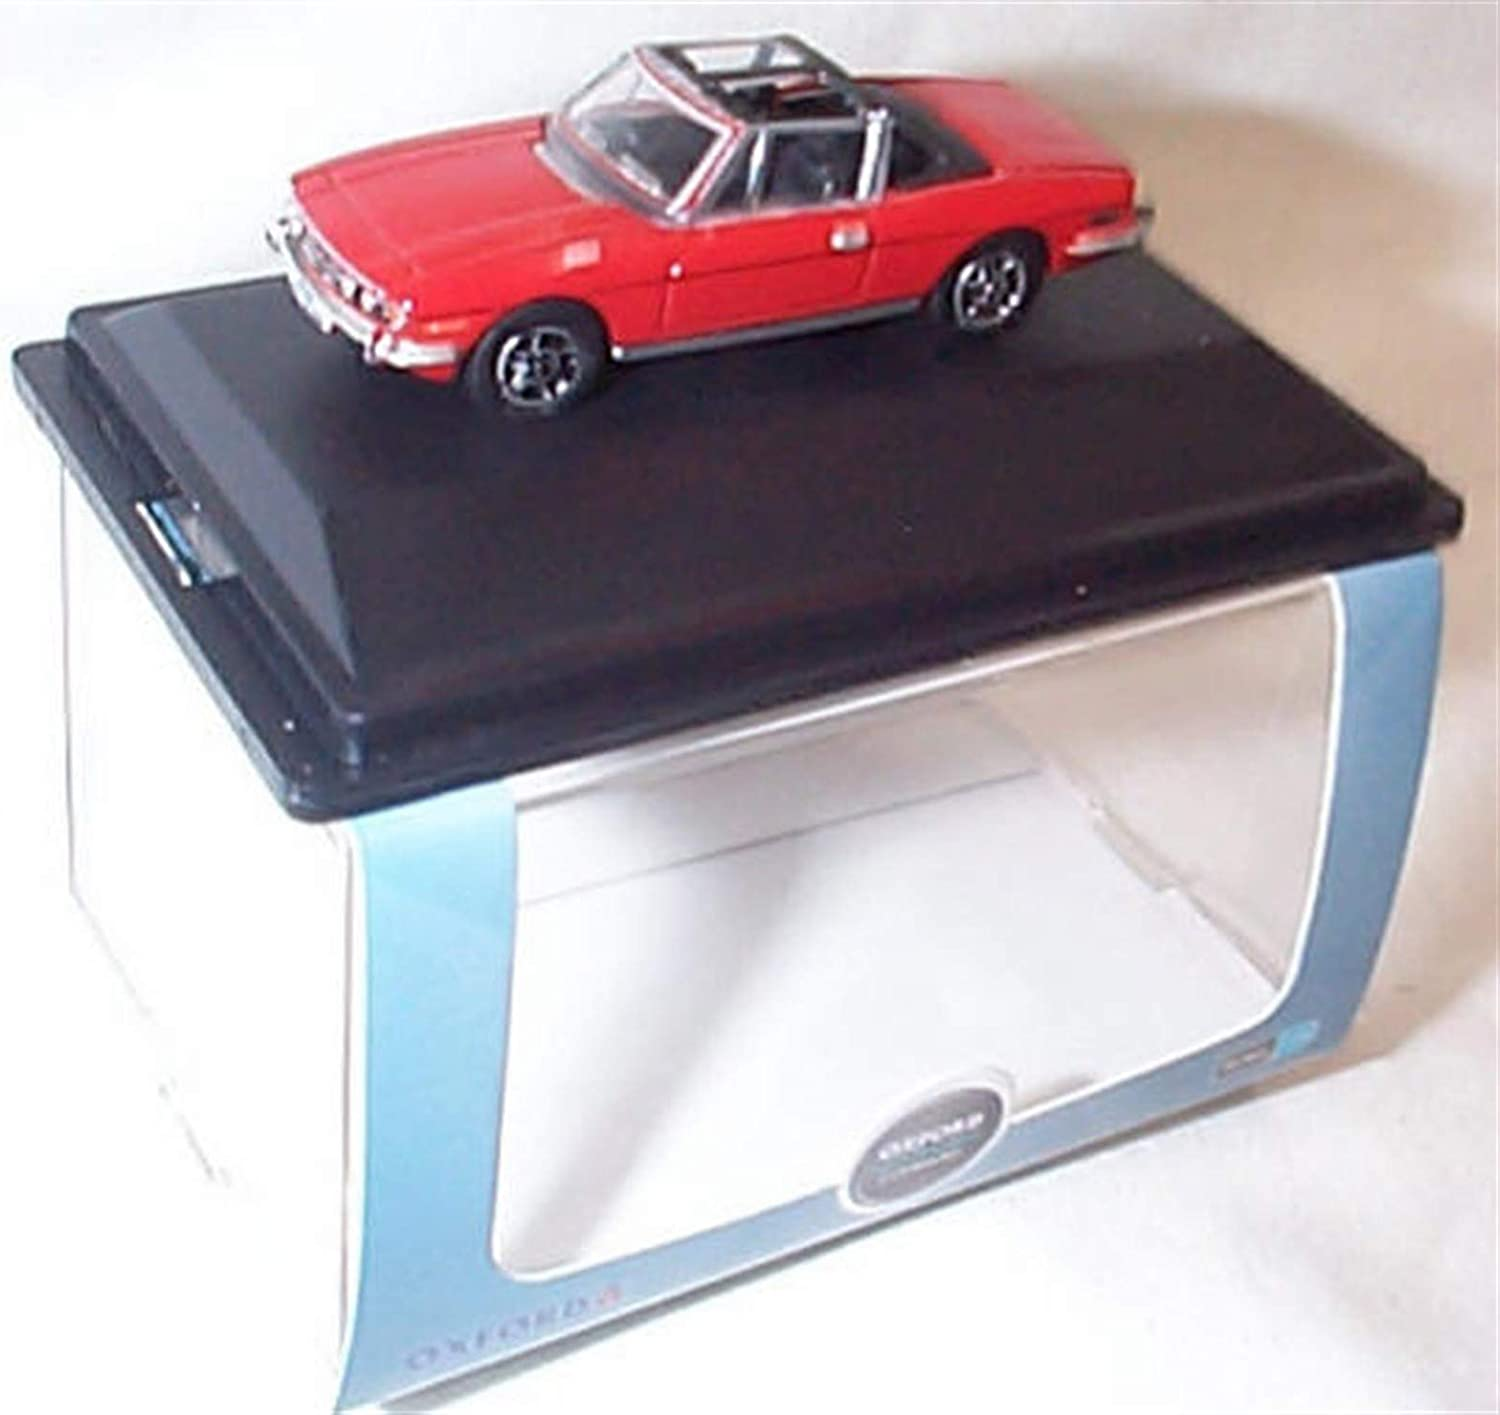 Oxford triumph stag pimiento red car vehicle 1:76 scale diecast model